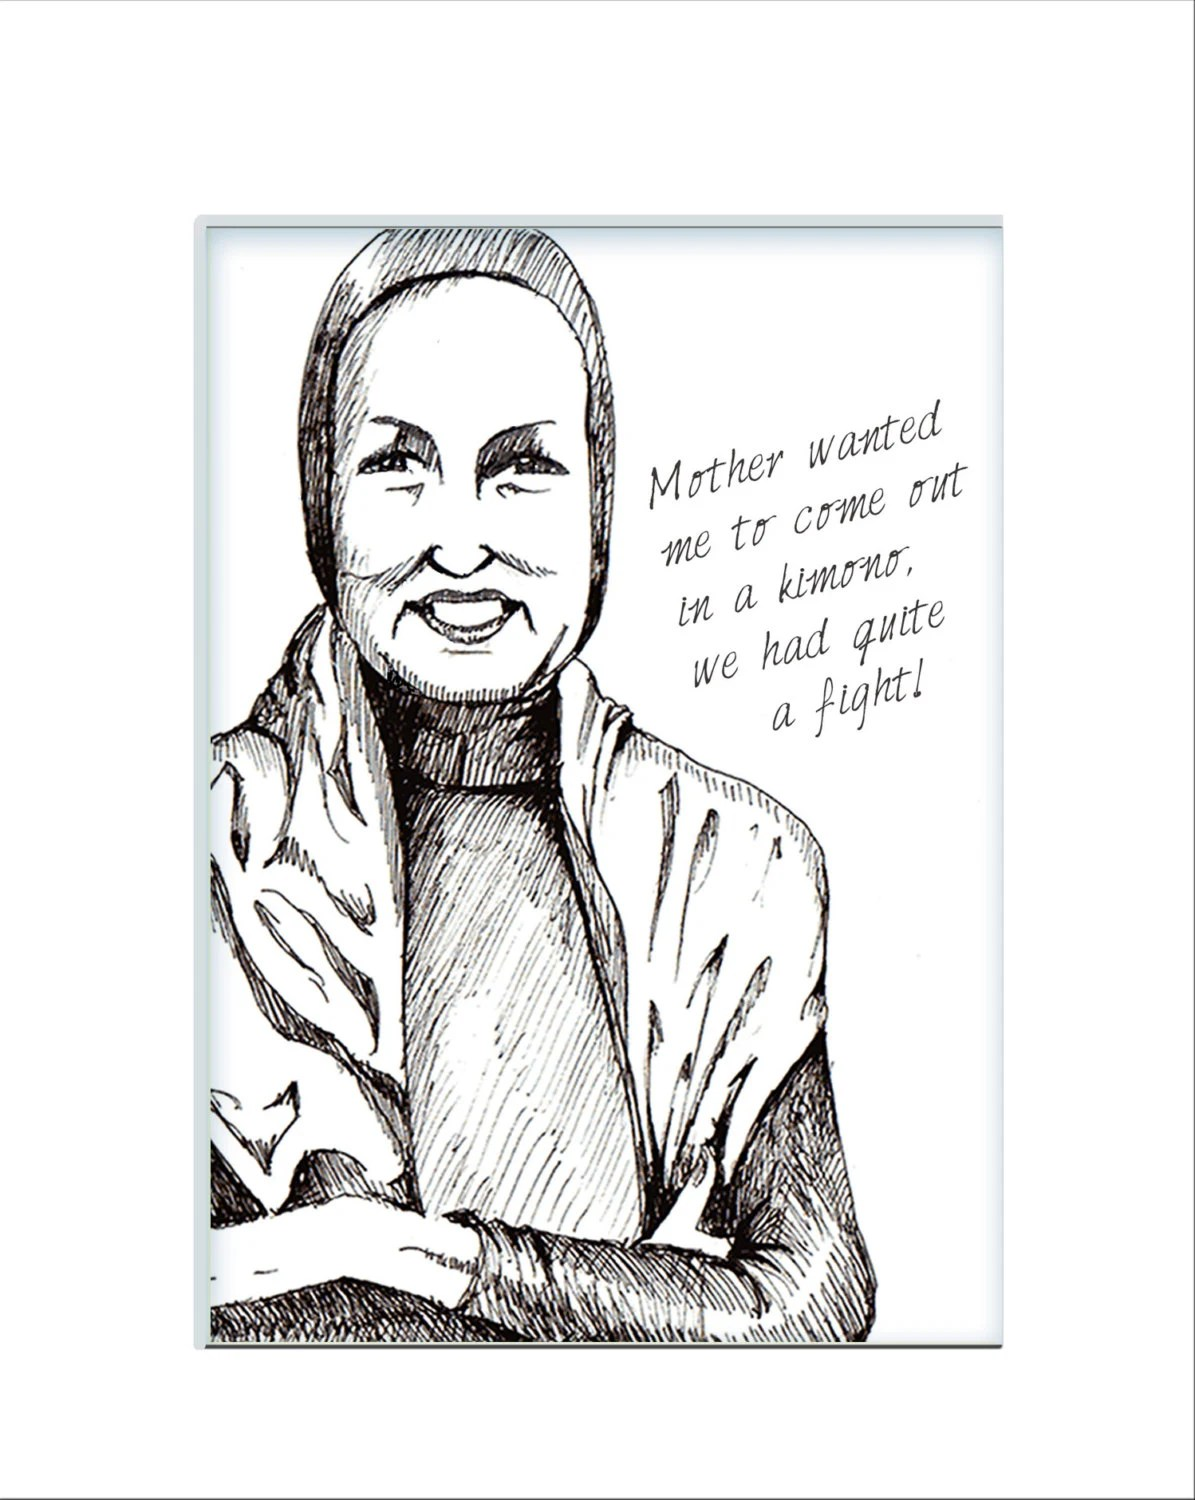 Original black and white drawing of the Divine Edie Beale